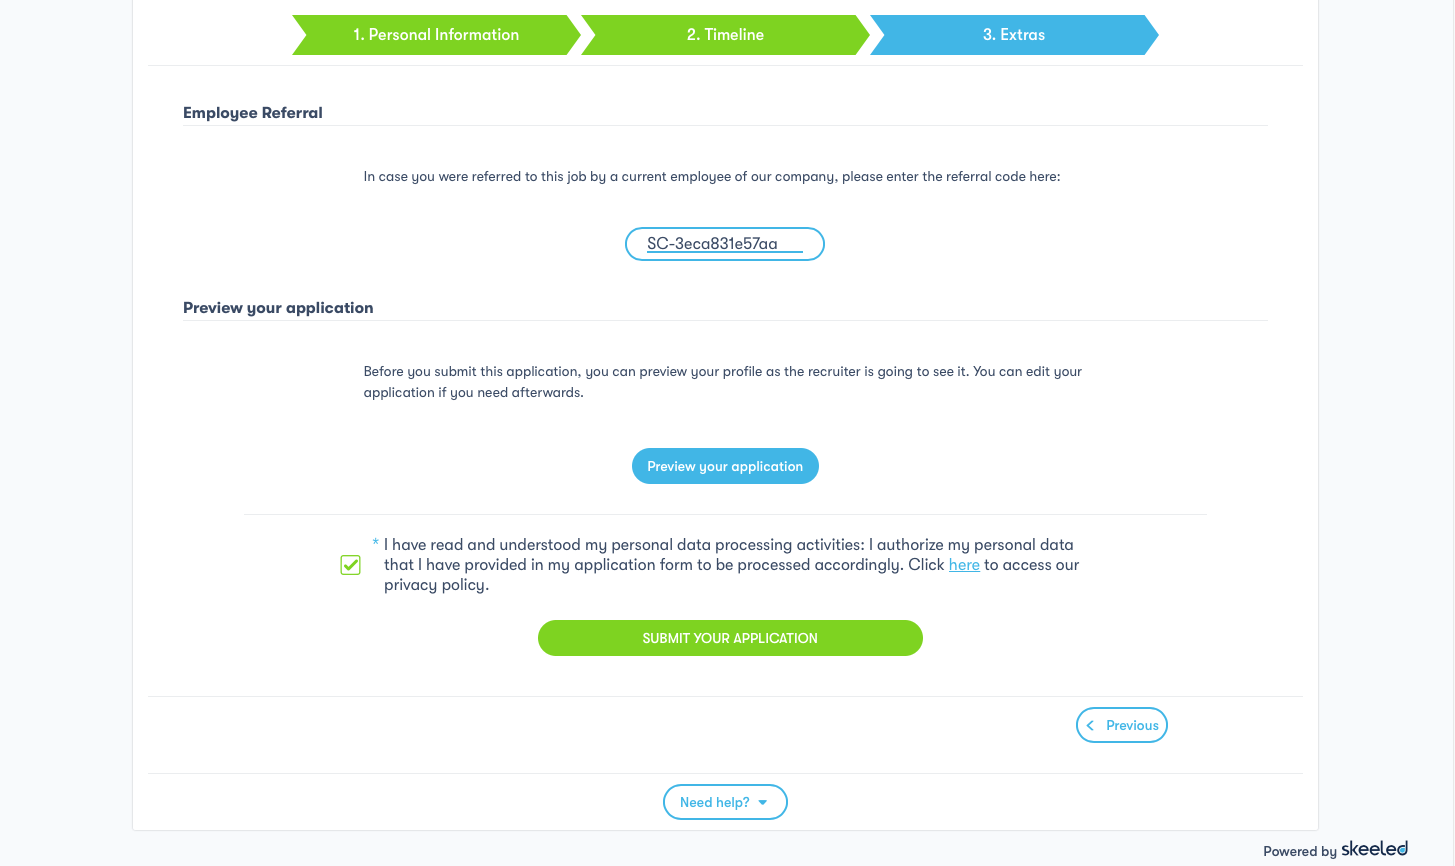 1.1 - employee referral code field on the application form